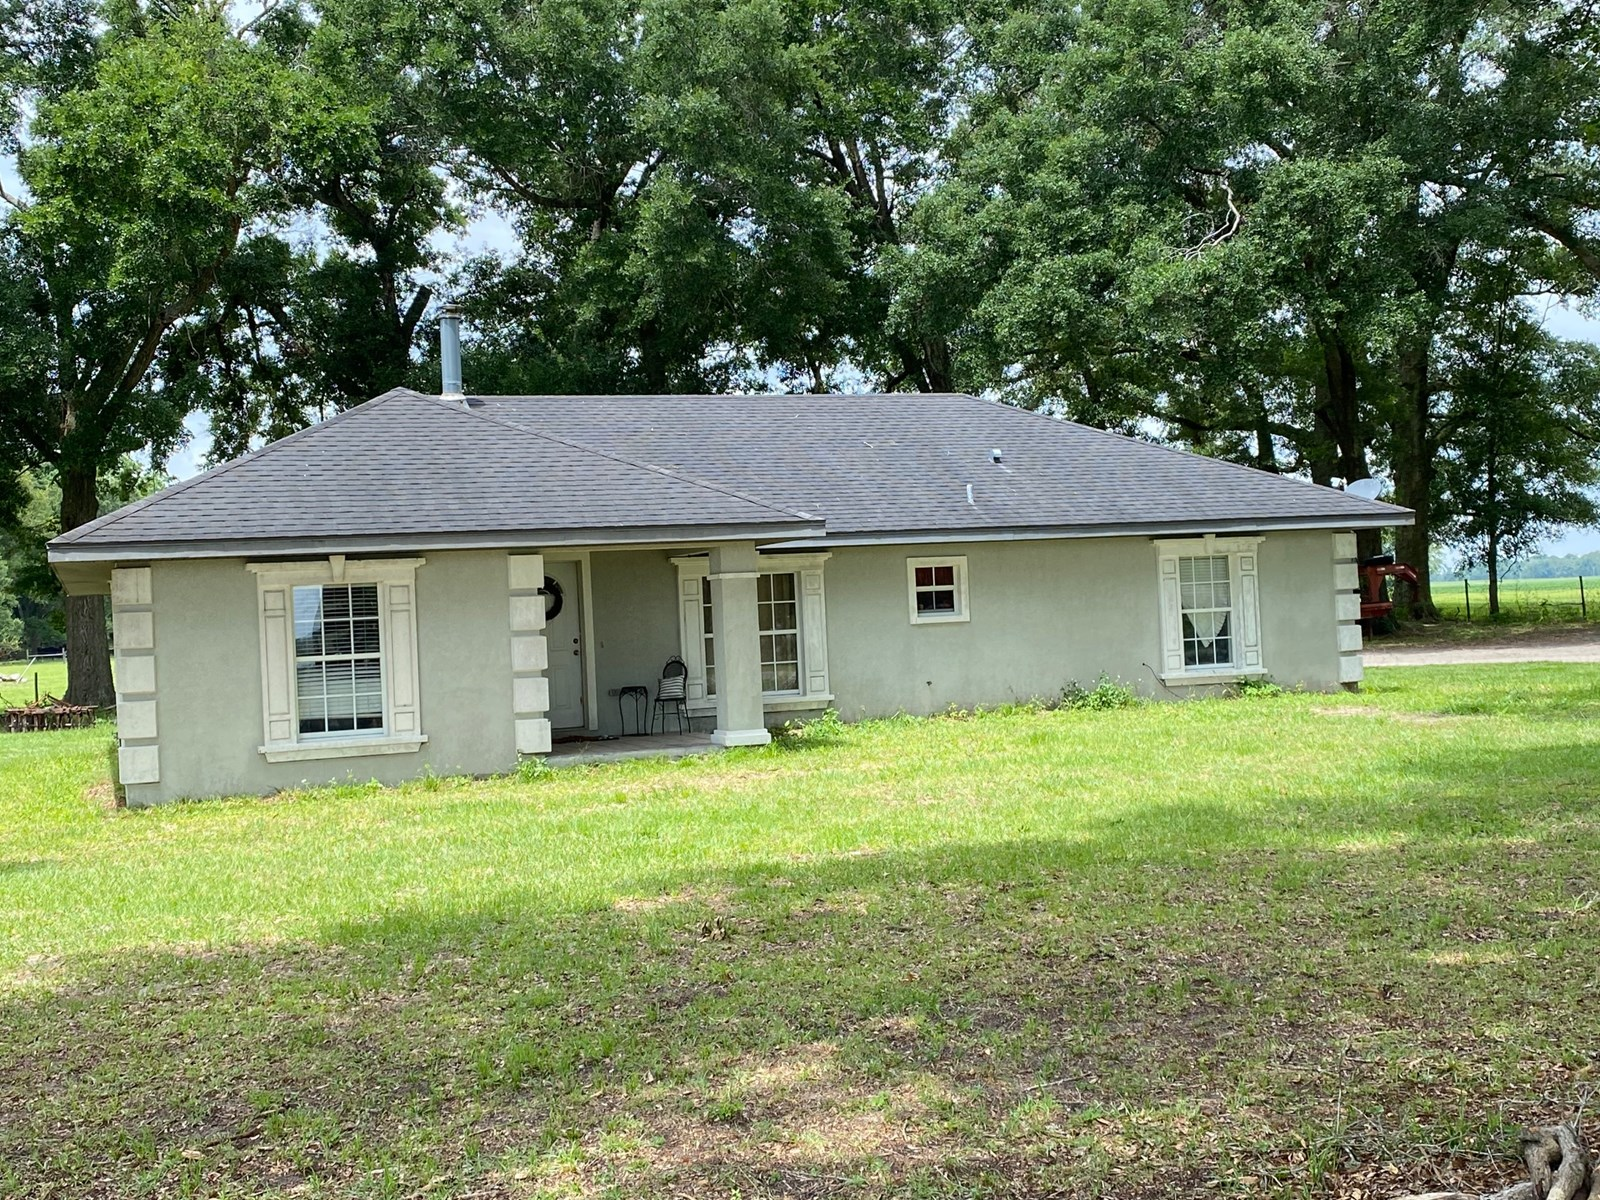 BEAUTIFUL 3/2 LOCATED WITHIN MINUTES OF MAYO FOR ONLY $199,9